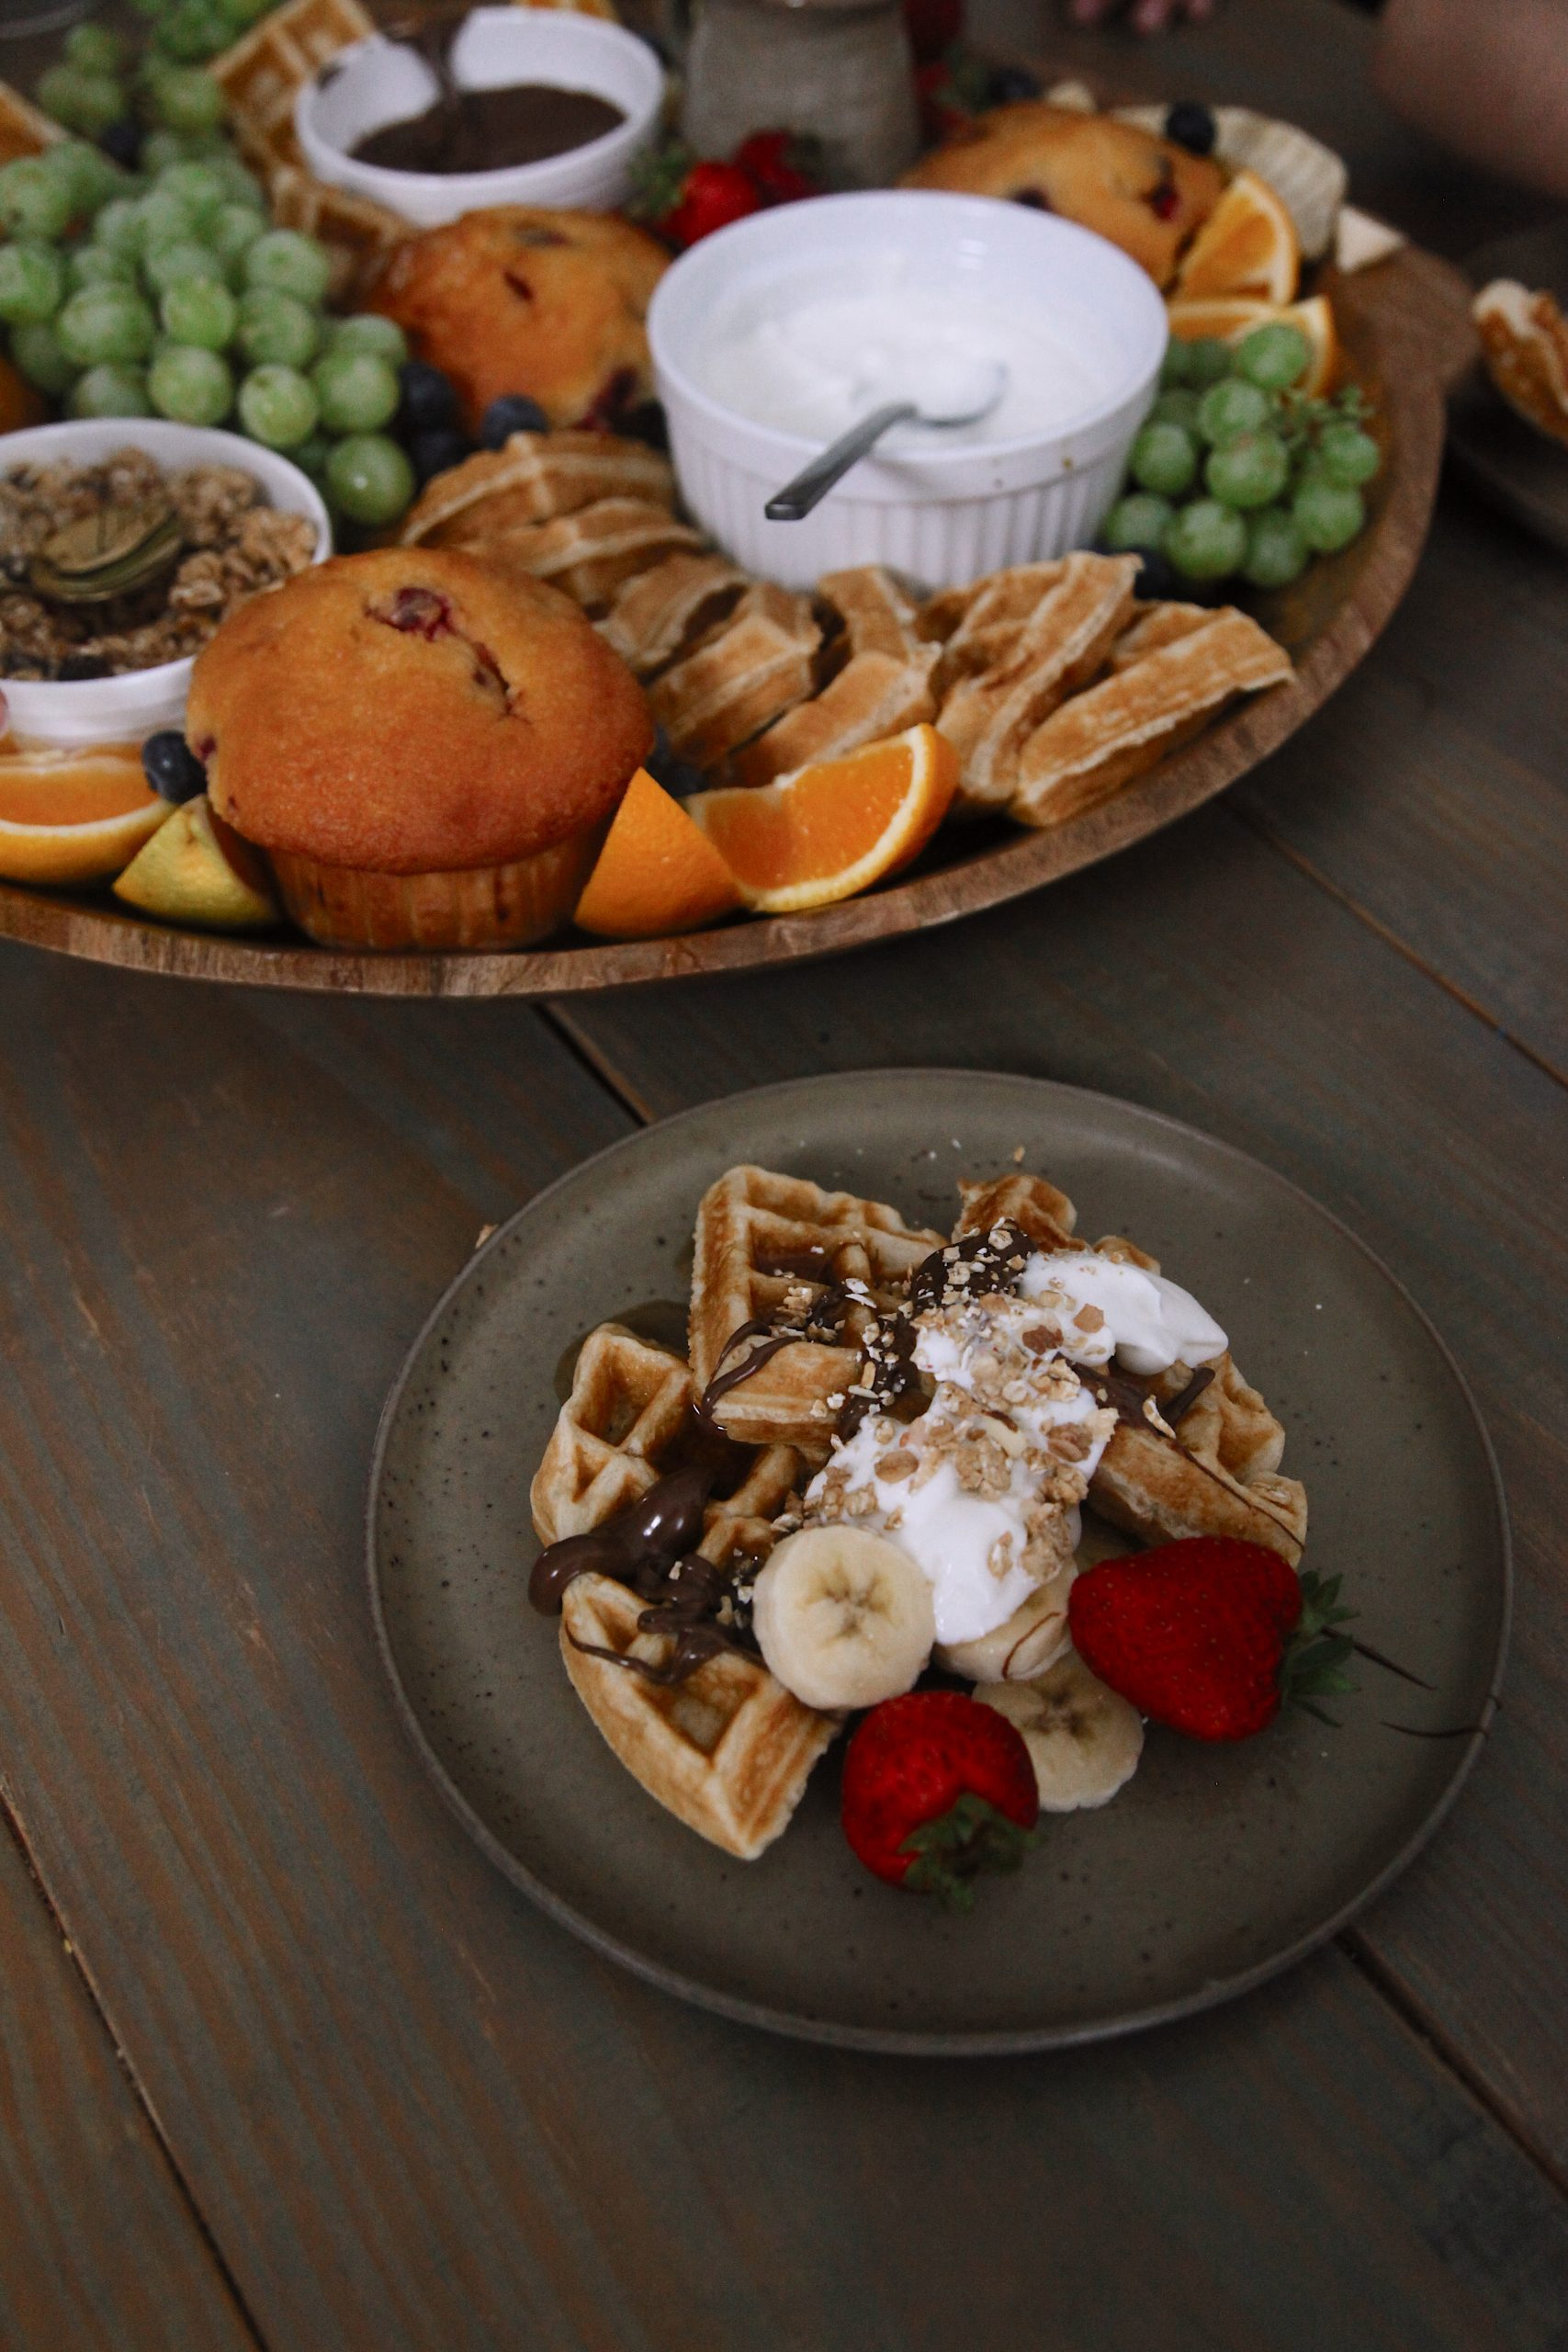 Easy Waffle Recipe for an Amazing Breakfast for Dinner Family Night - Chicken and Waffles Breakfast Board | xWaffle Recipe by popular Florida lifestyle blog, Fresh Mommy Blog: image of a wooden board filled with waffles, muffins, grapes, strawberries, orange slices, granola, fried chicken, yogurt, and chocolate sauce. | Waffle Recipe by popular Florida lifestyle blog, Fresh Mommy Blog: image of a plate of waffles topped with greek yogurt, chocolate sauce, granola, bananas, and strawberries.